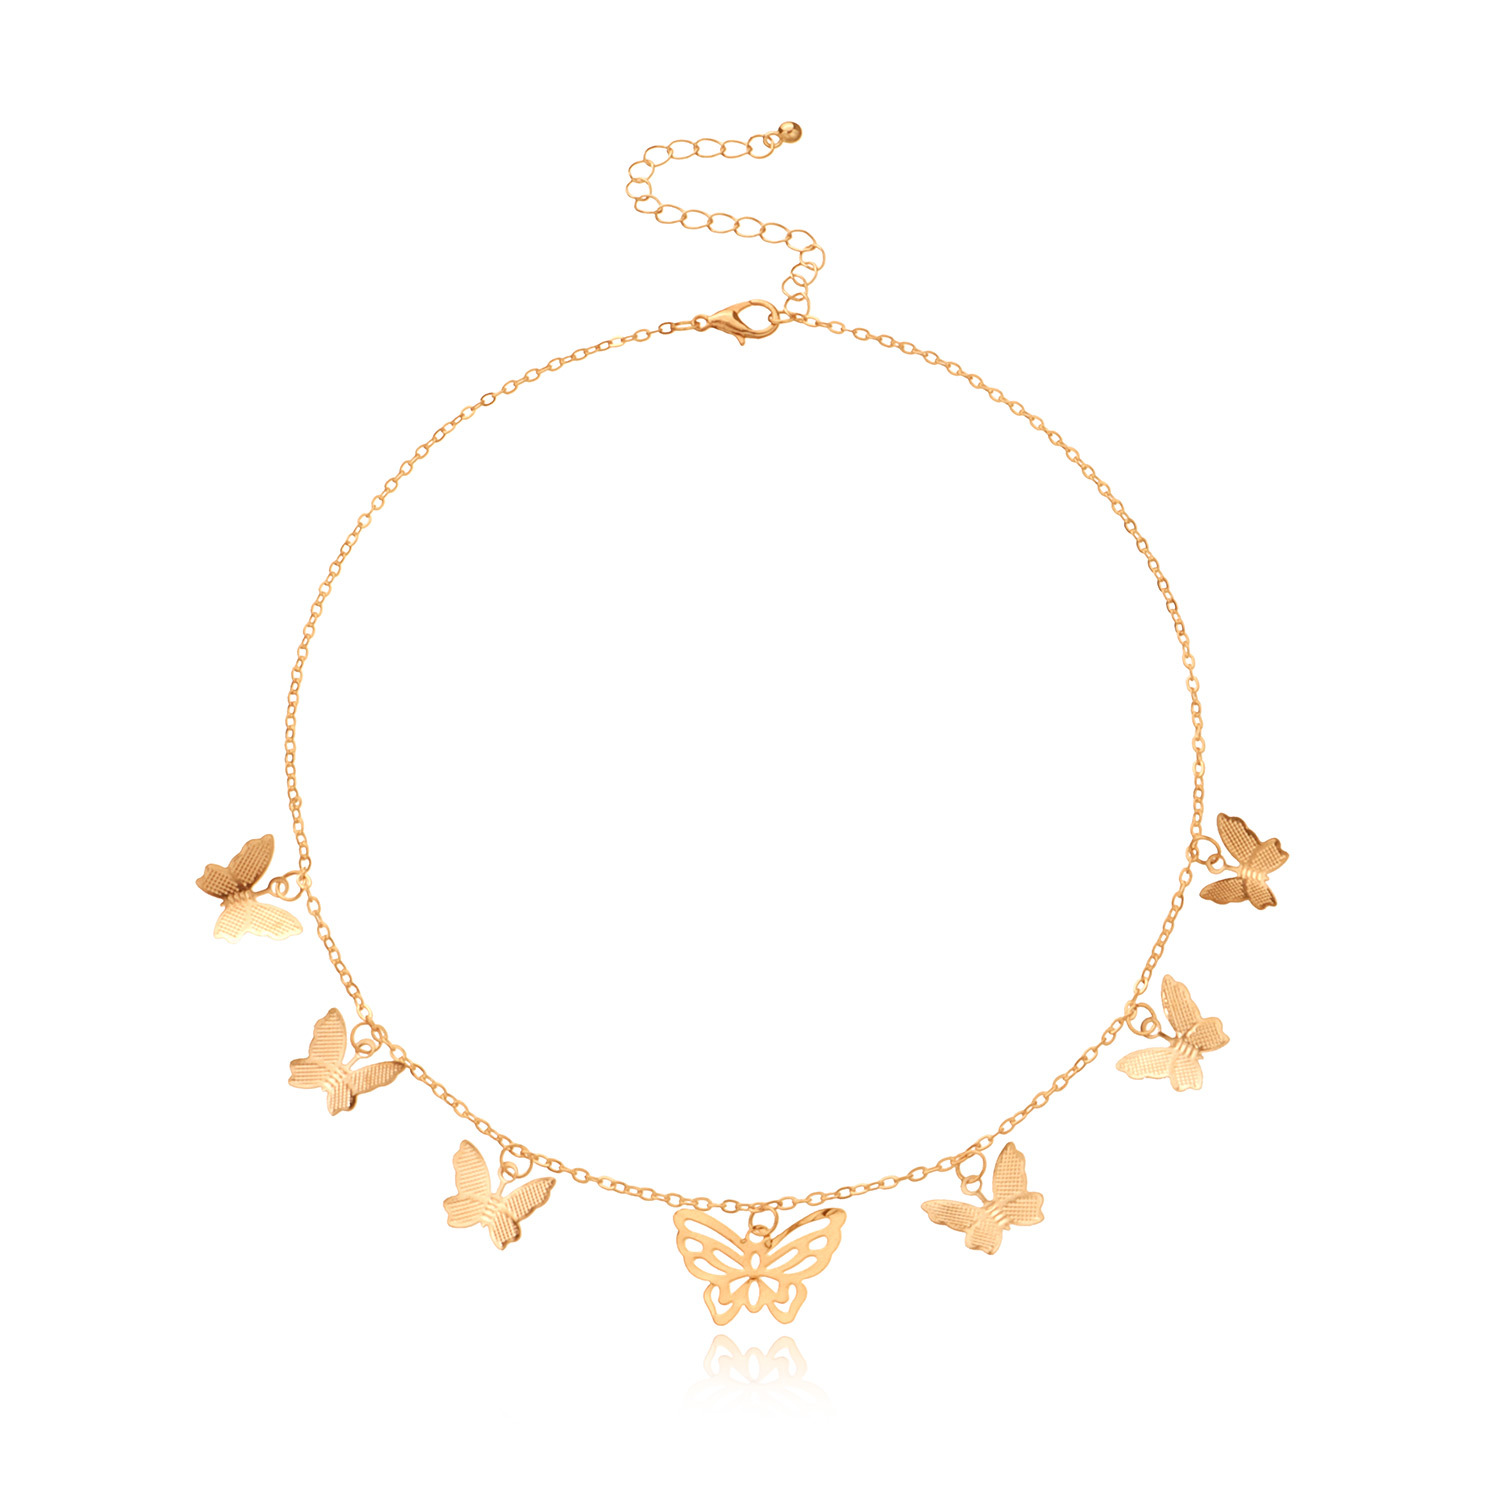 Gold Color Hollow Butterfly Pendant Necklace for Women Choker Necklaces Female Clavicle Chain 2020 Fashion Jewelry New